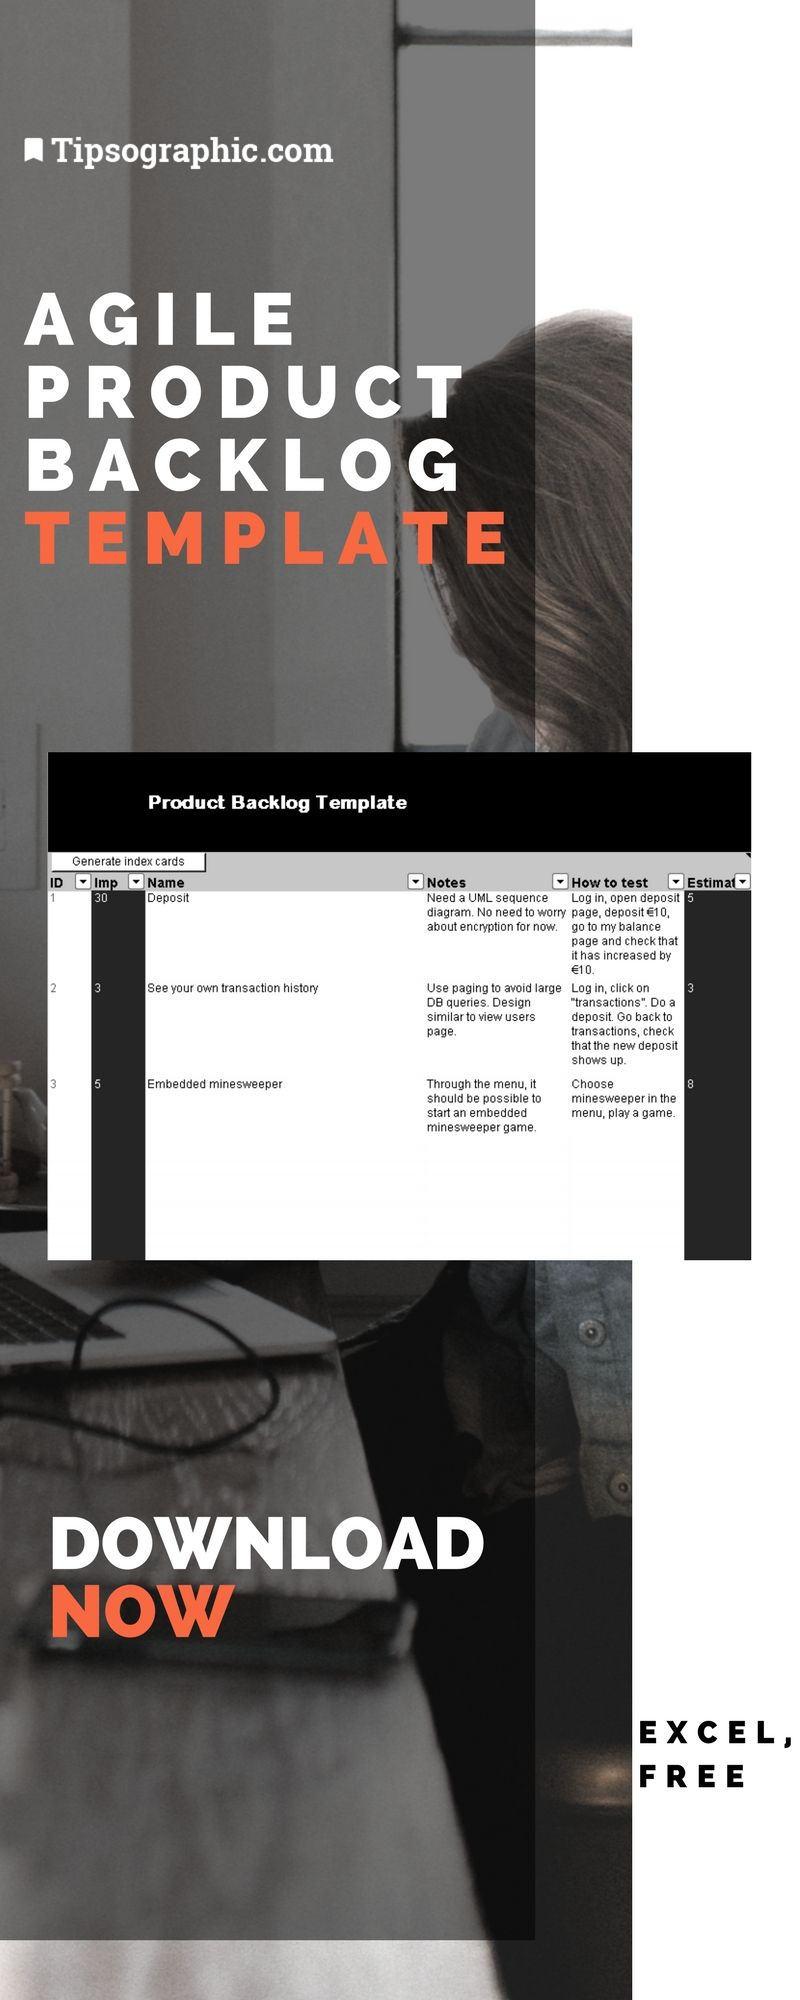 Agile Product Backlog Template for Excel, Free Download | Project ...